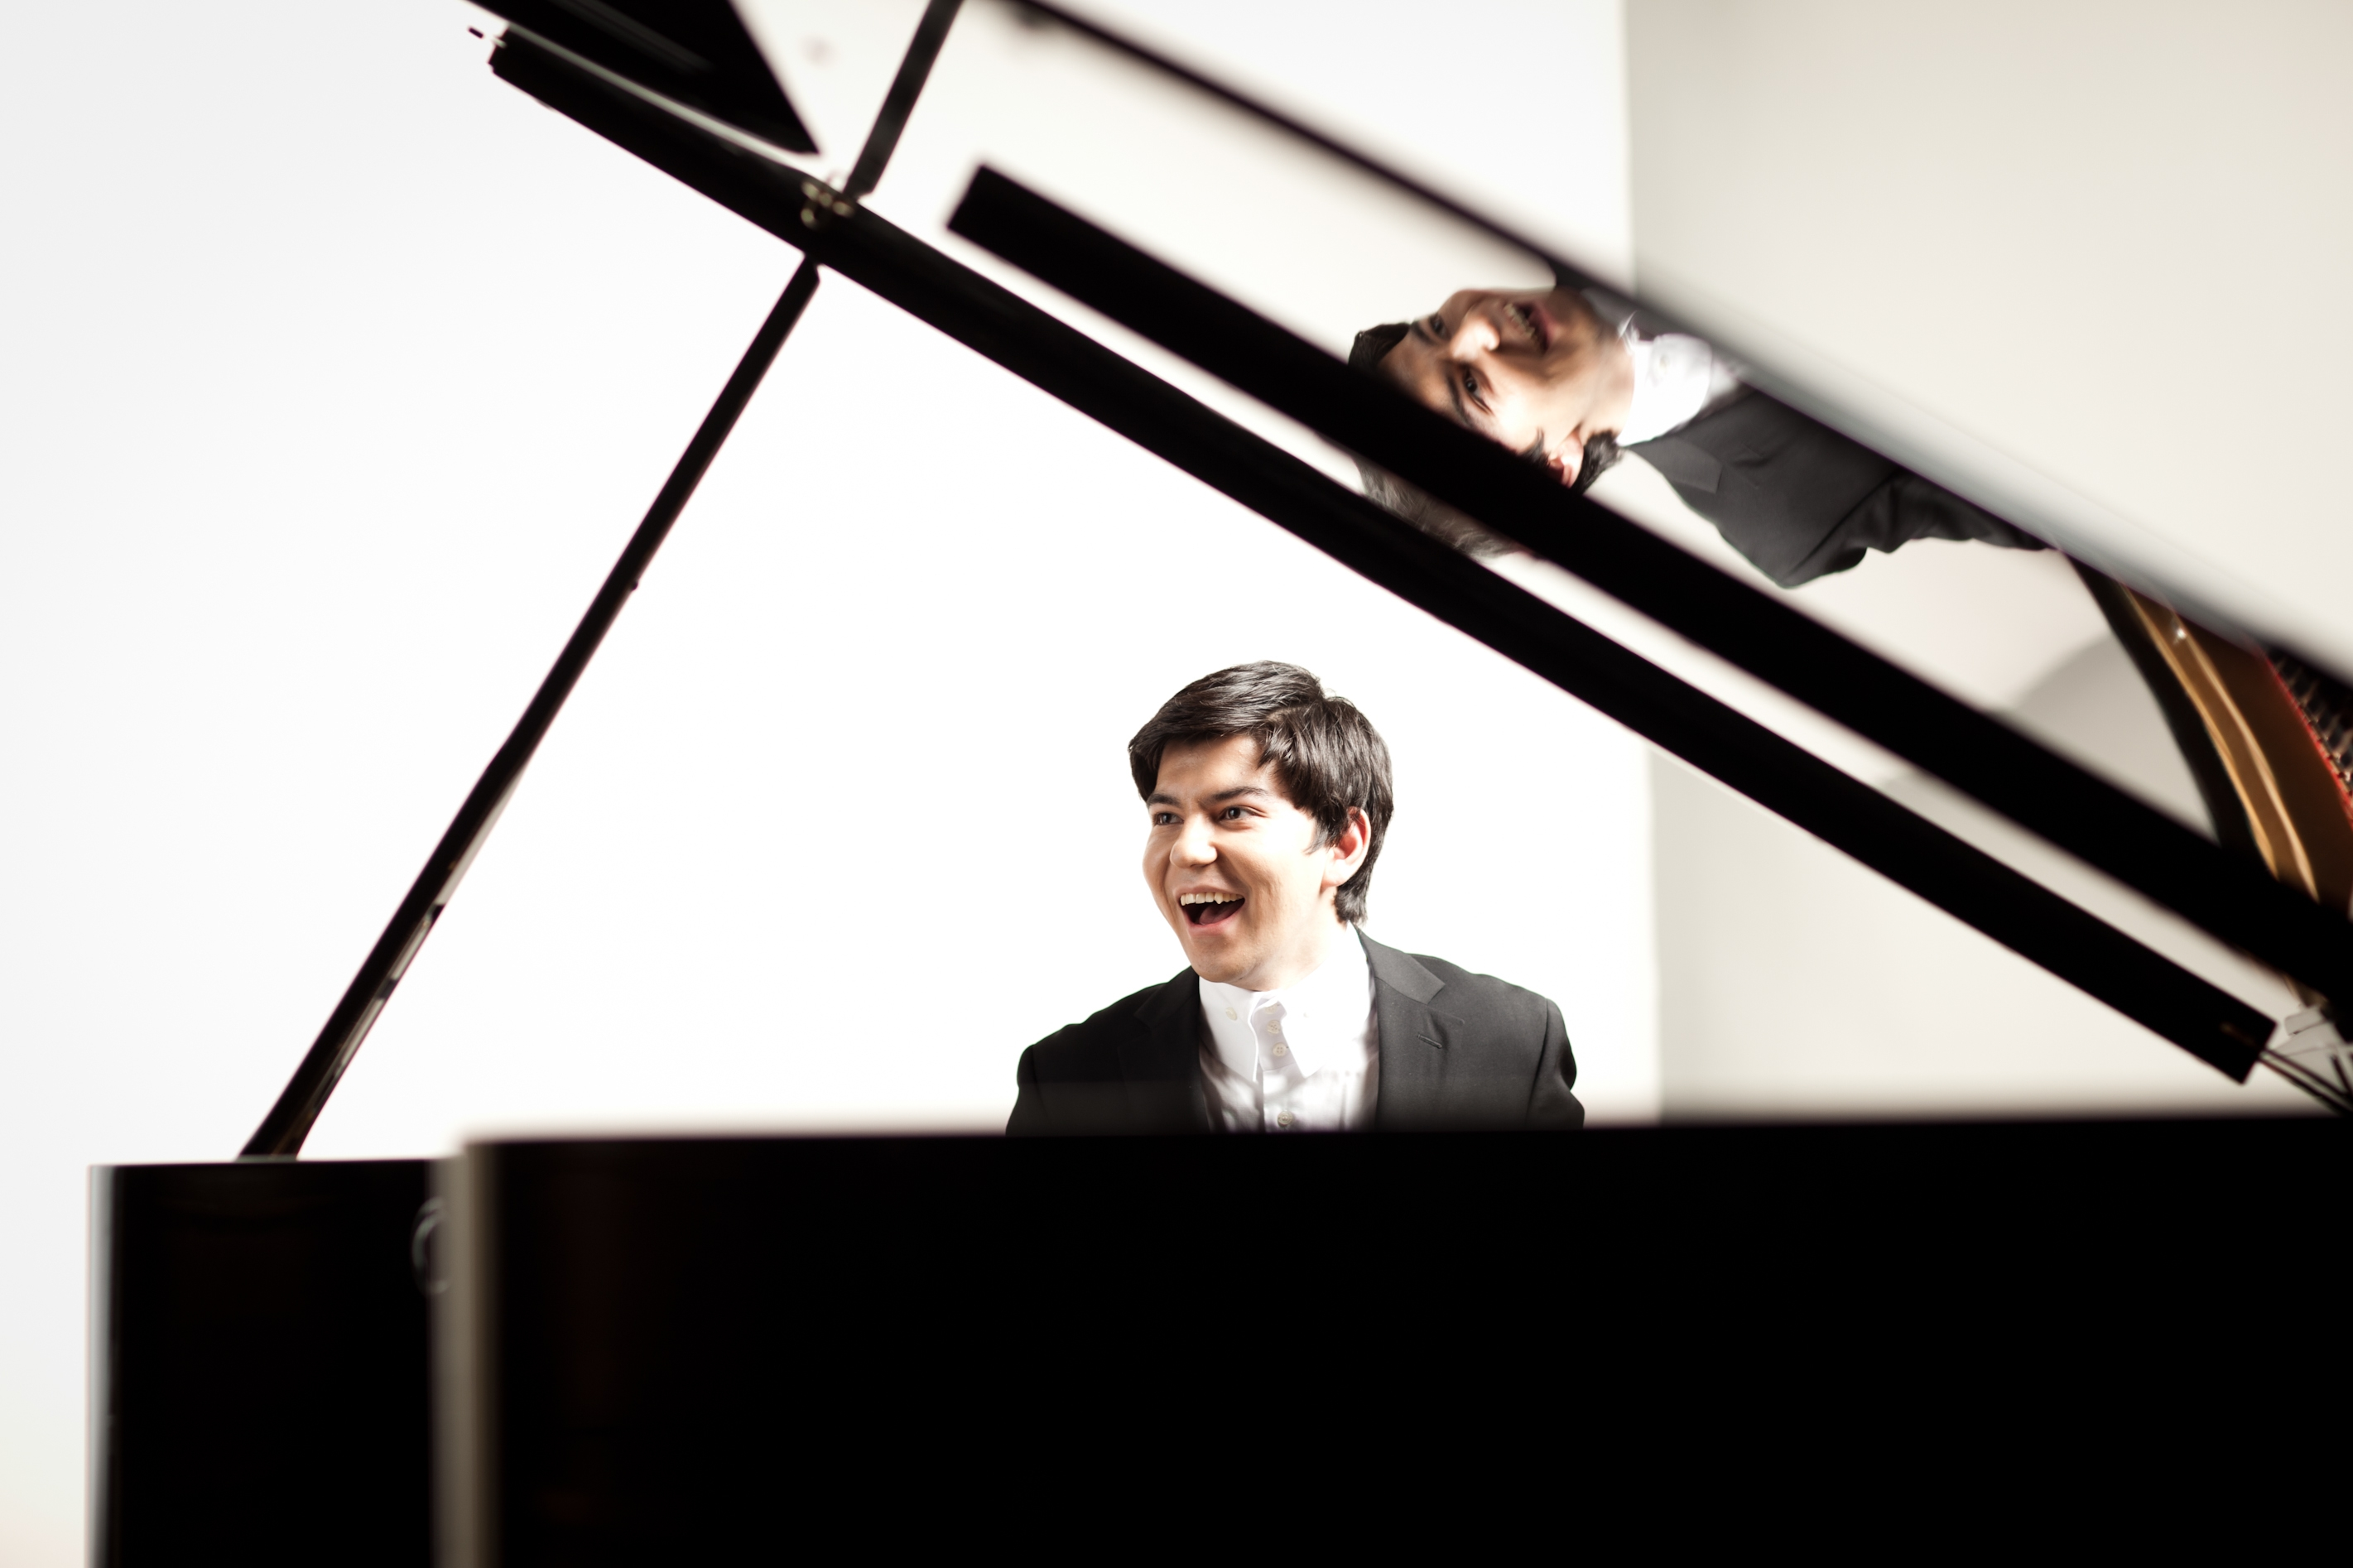 Concert Pianist Behzod Abduraimov, Photo Credit: vancrecital.com